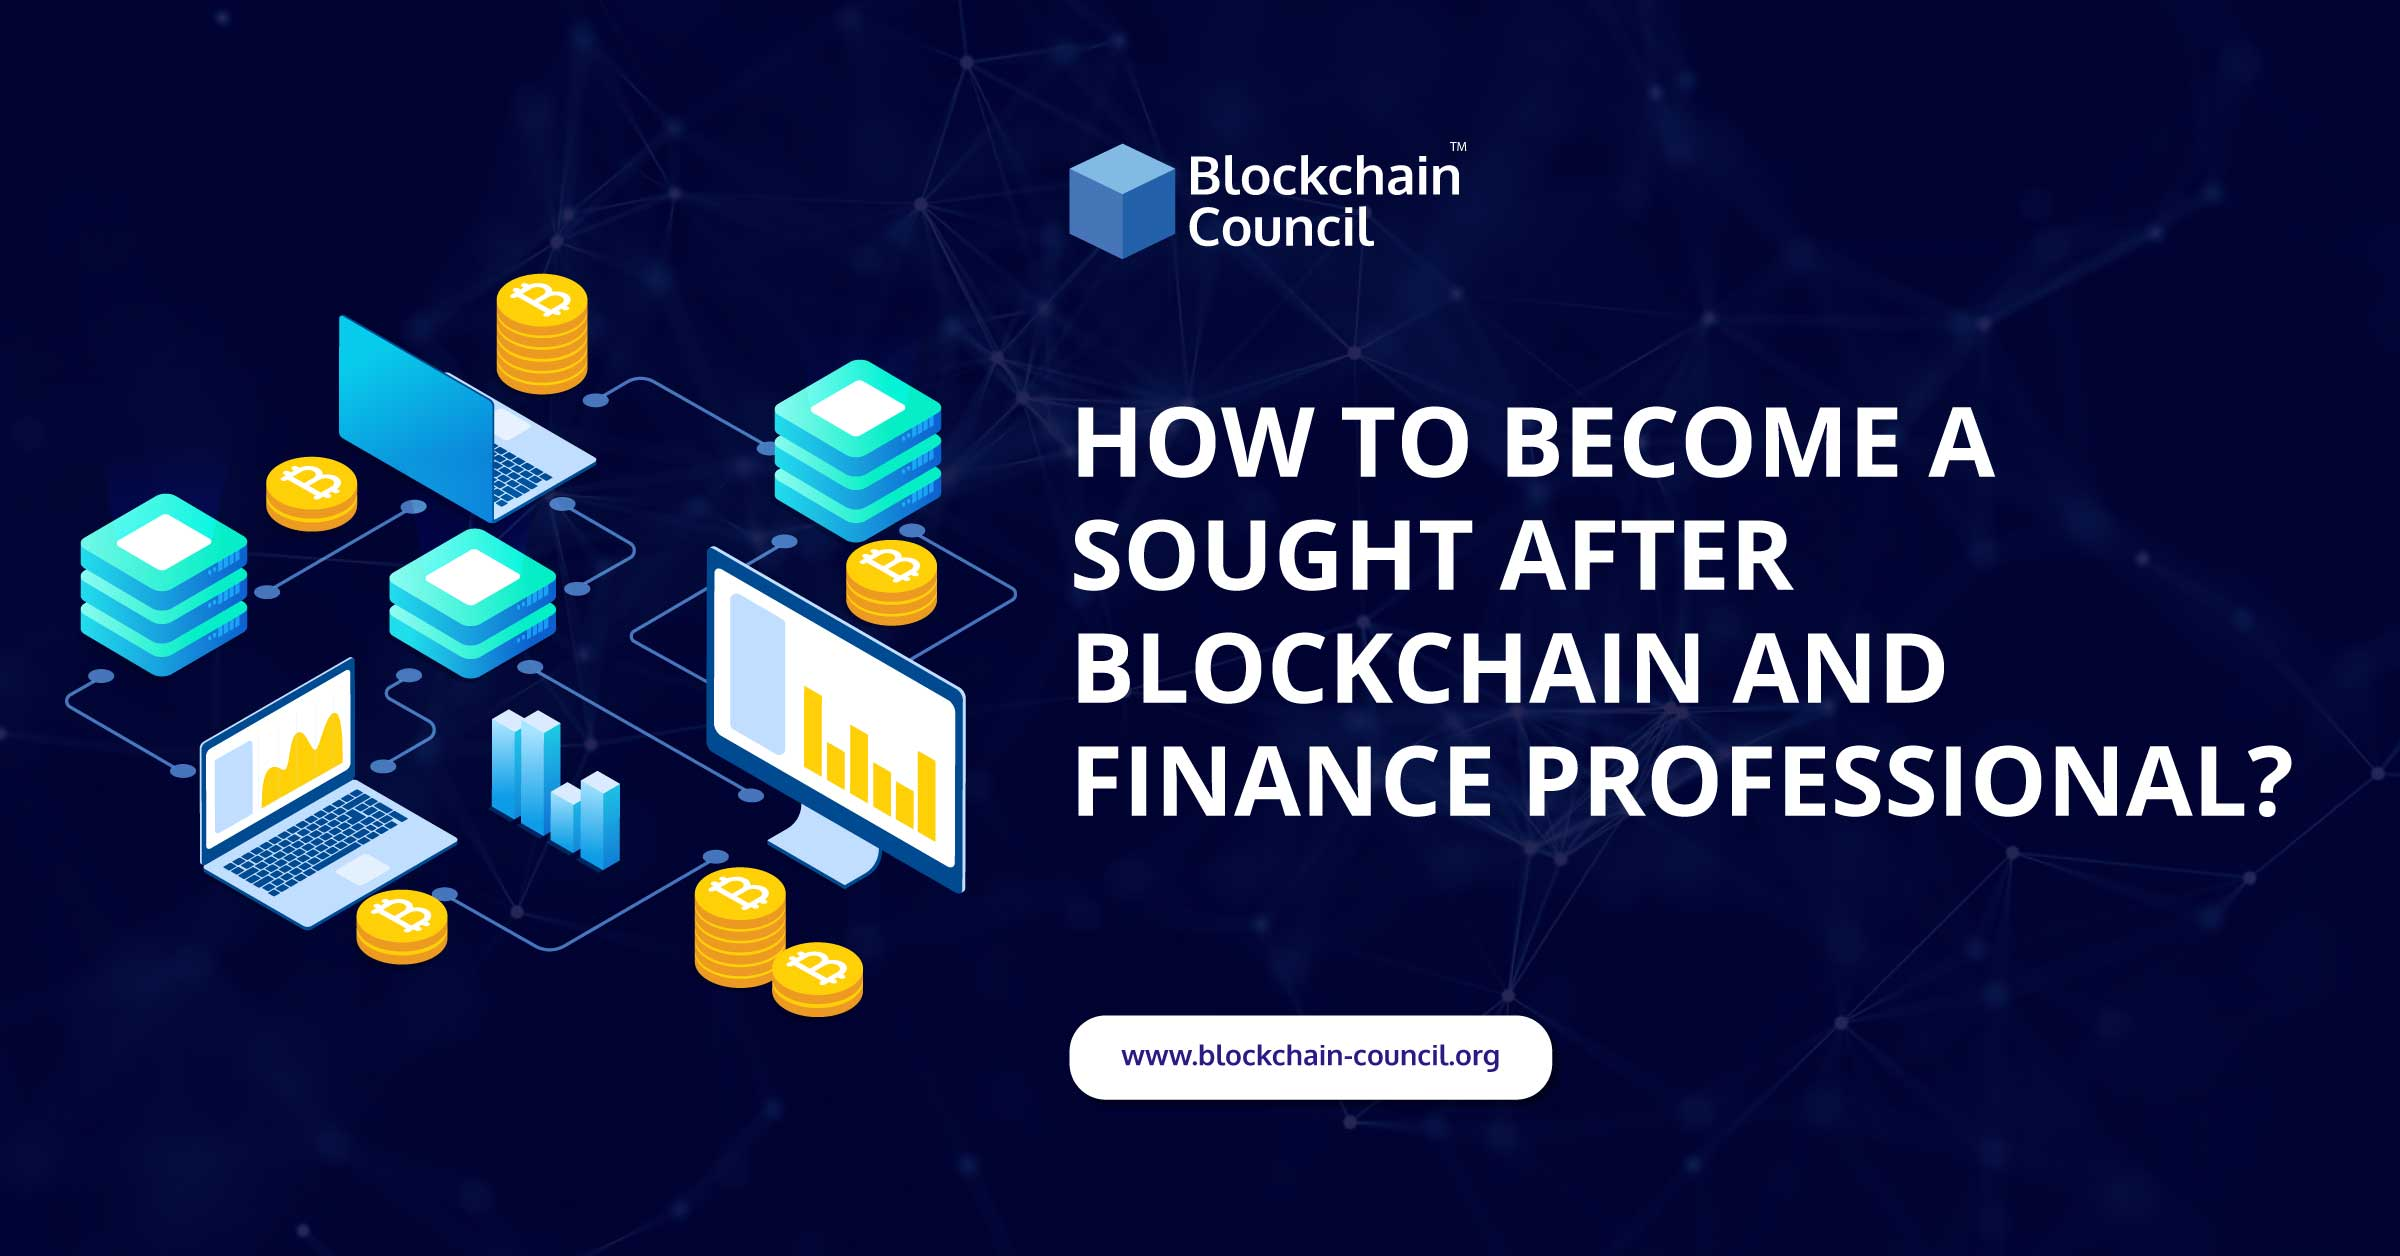 How-To-Become-A-Sought-After-Blockchain-And-Finance-Professional-